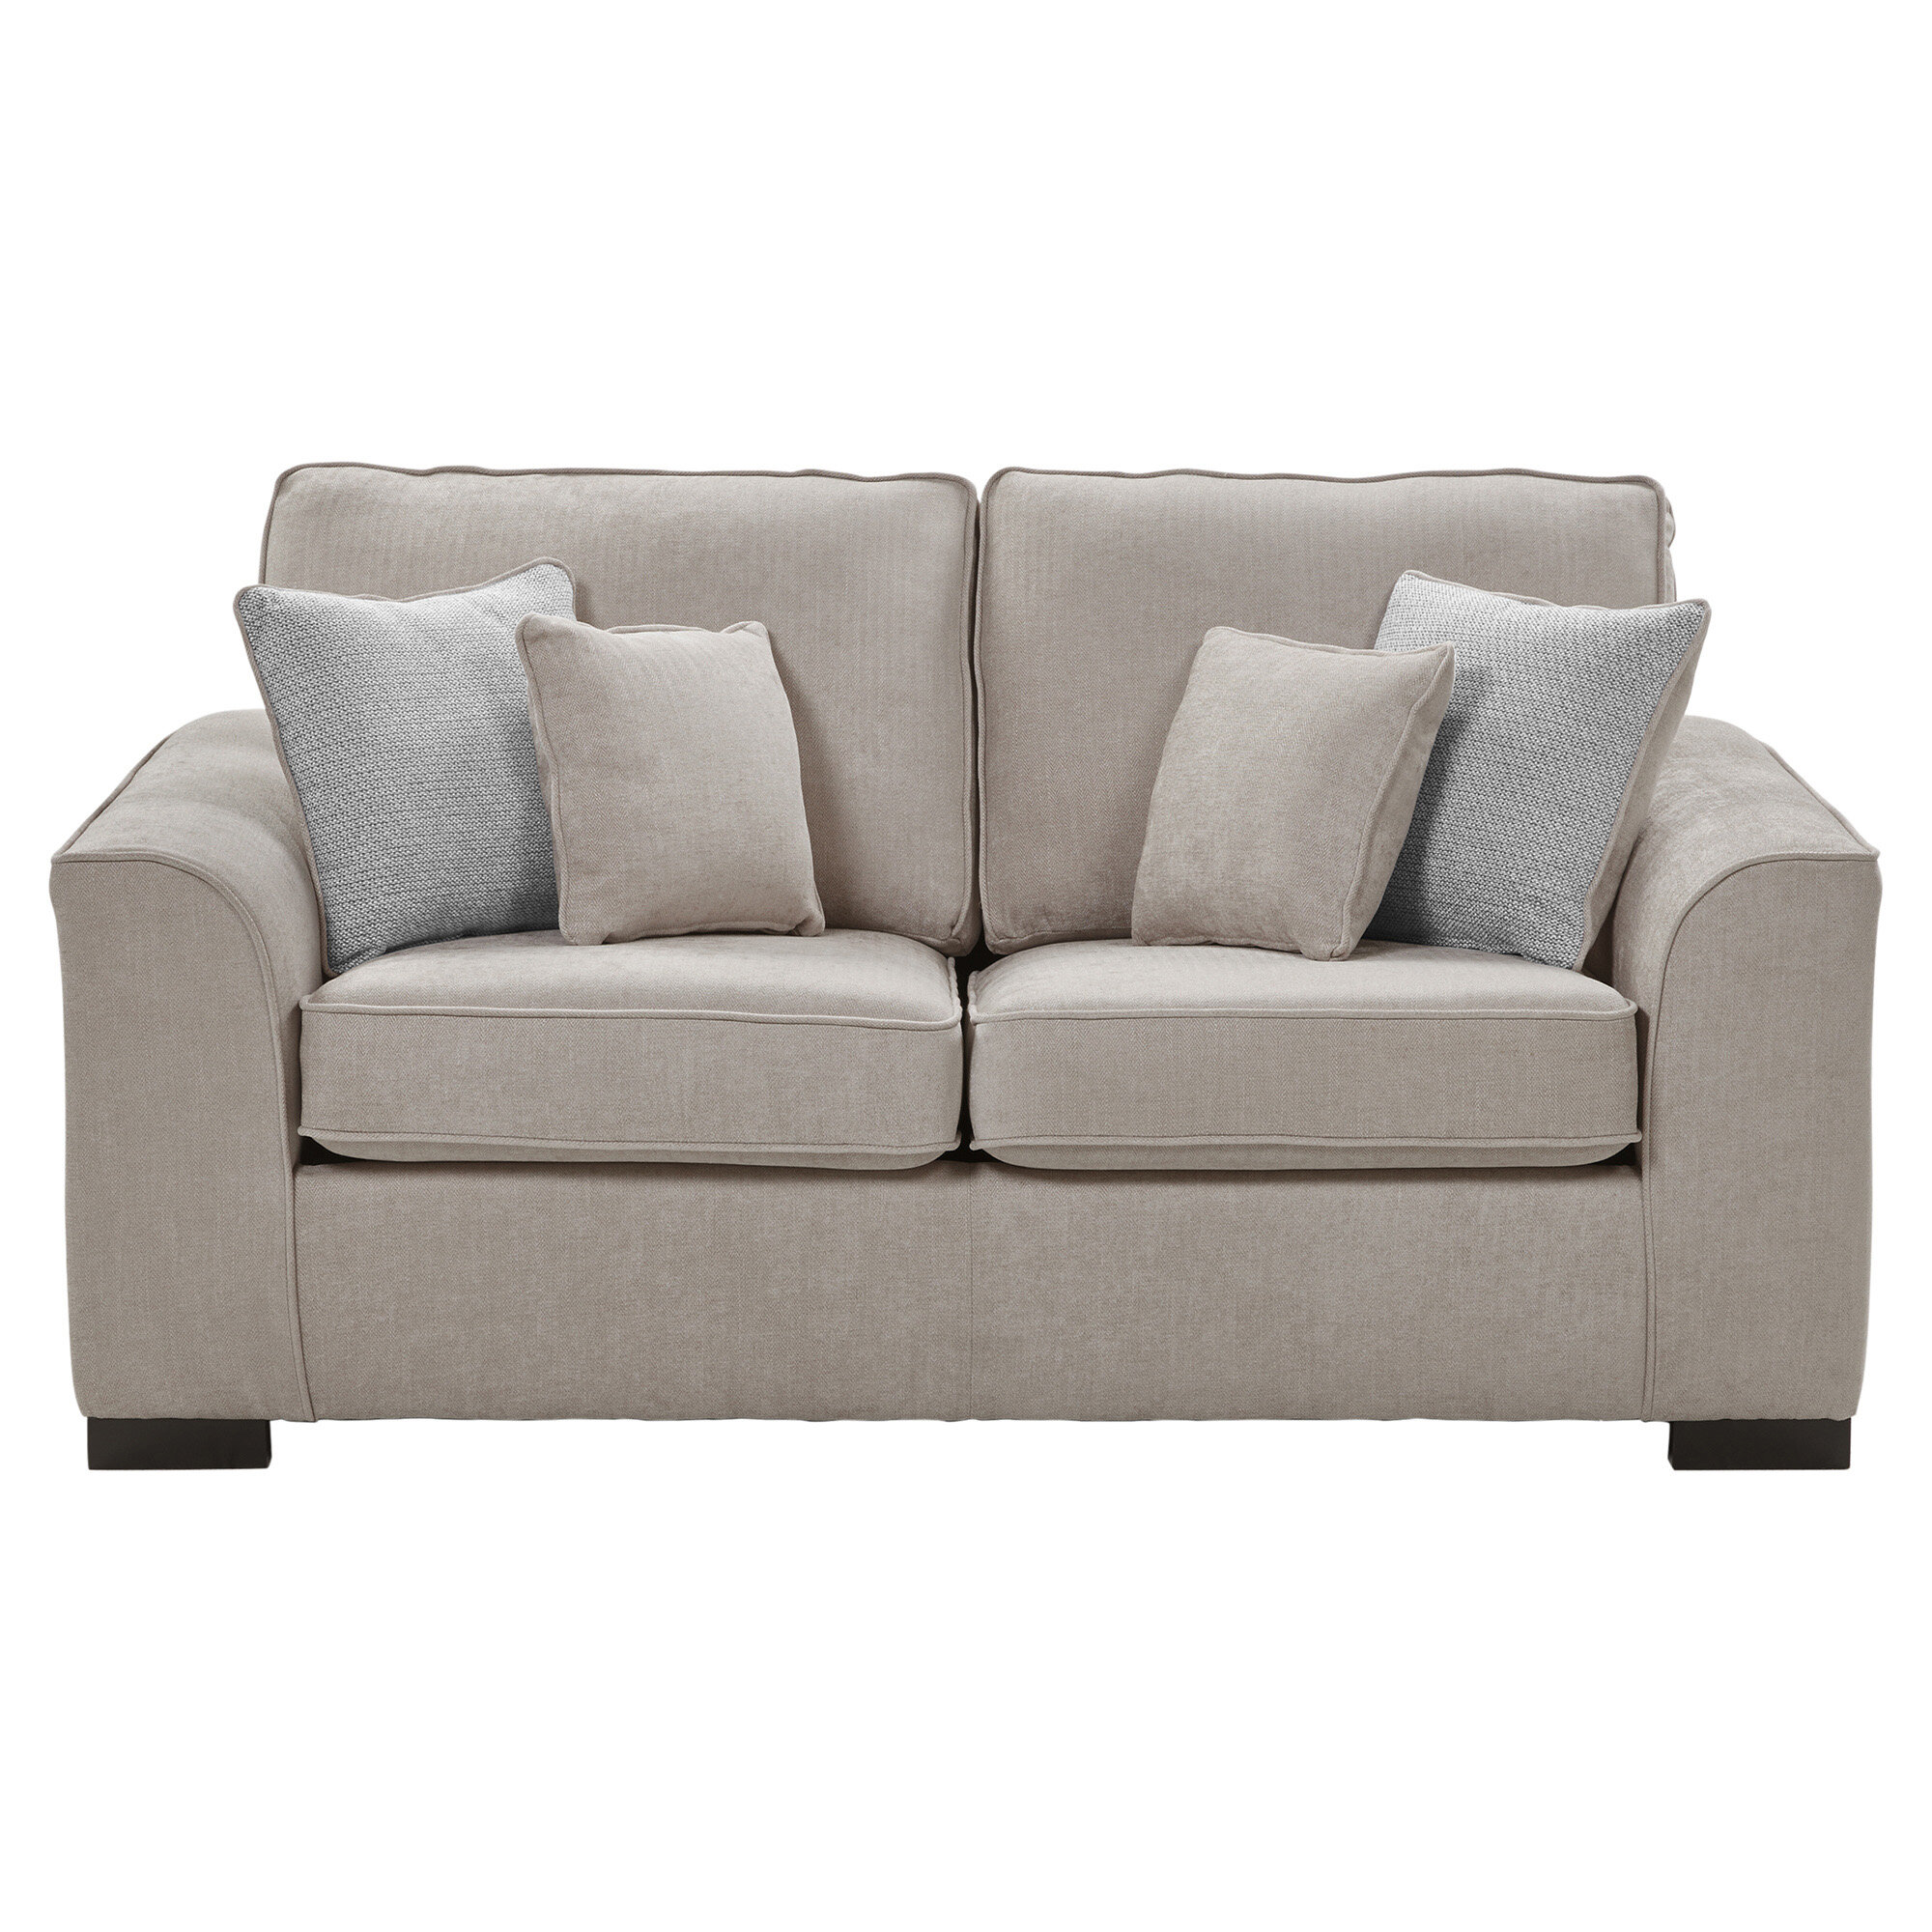 Picture of: Brambly Cottage Alicea 2 Seater Fold Out Sofa Bed Reviews Wayfair Co Uk